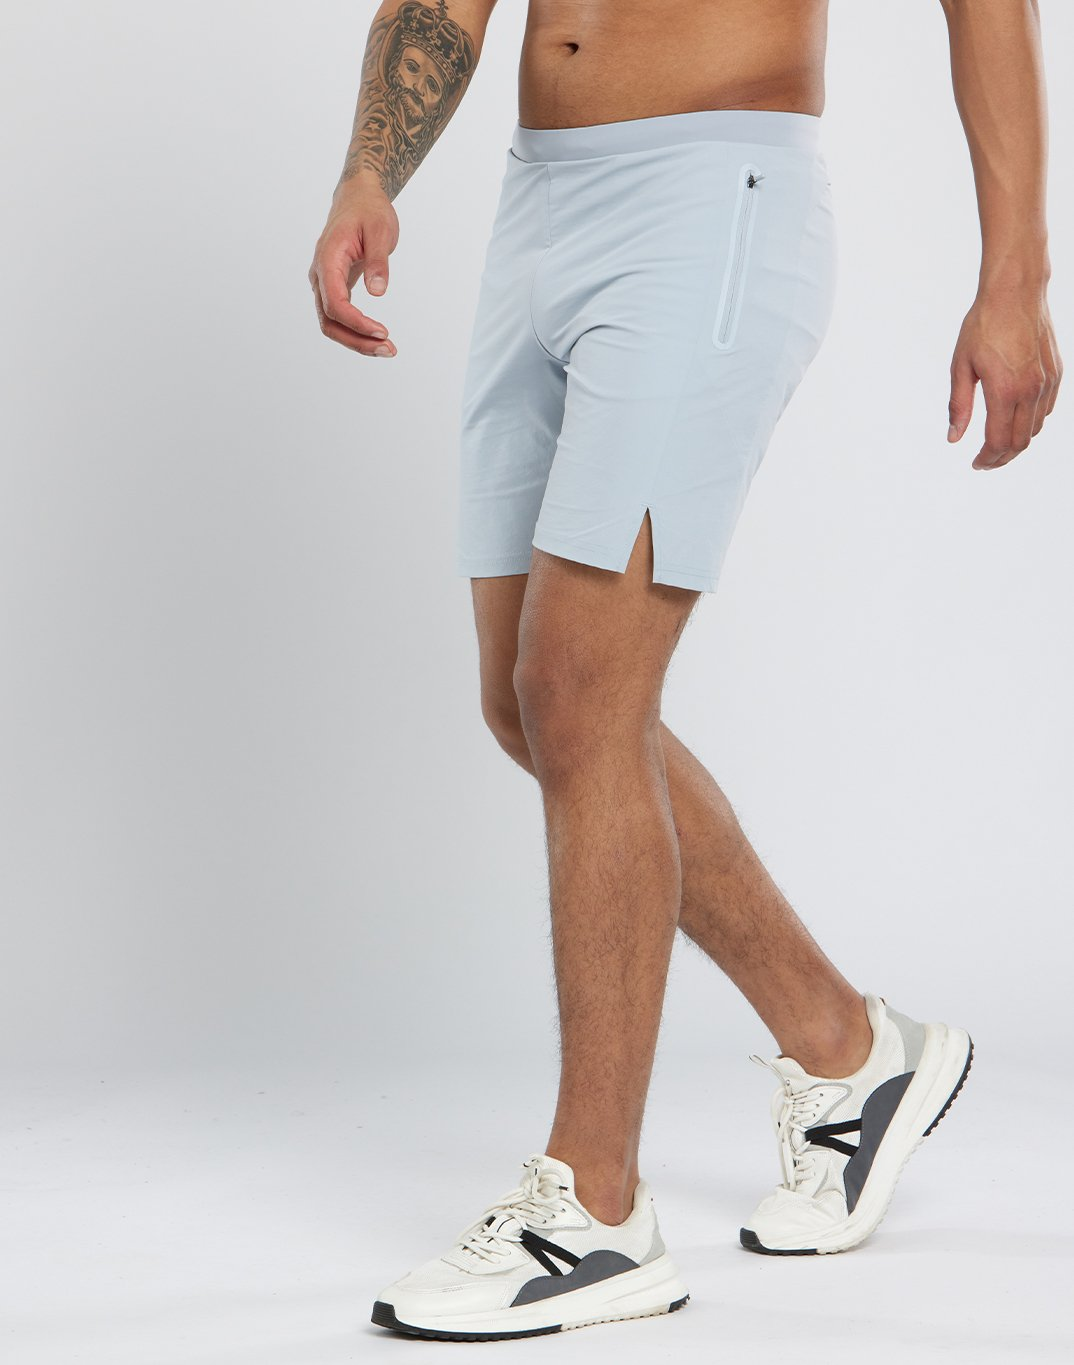 Gym Plus Coffee Shorts Mens Pace Shorts in Grey Designed in Ireland